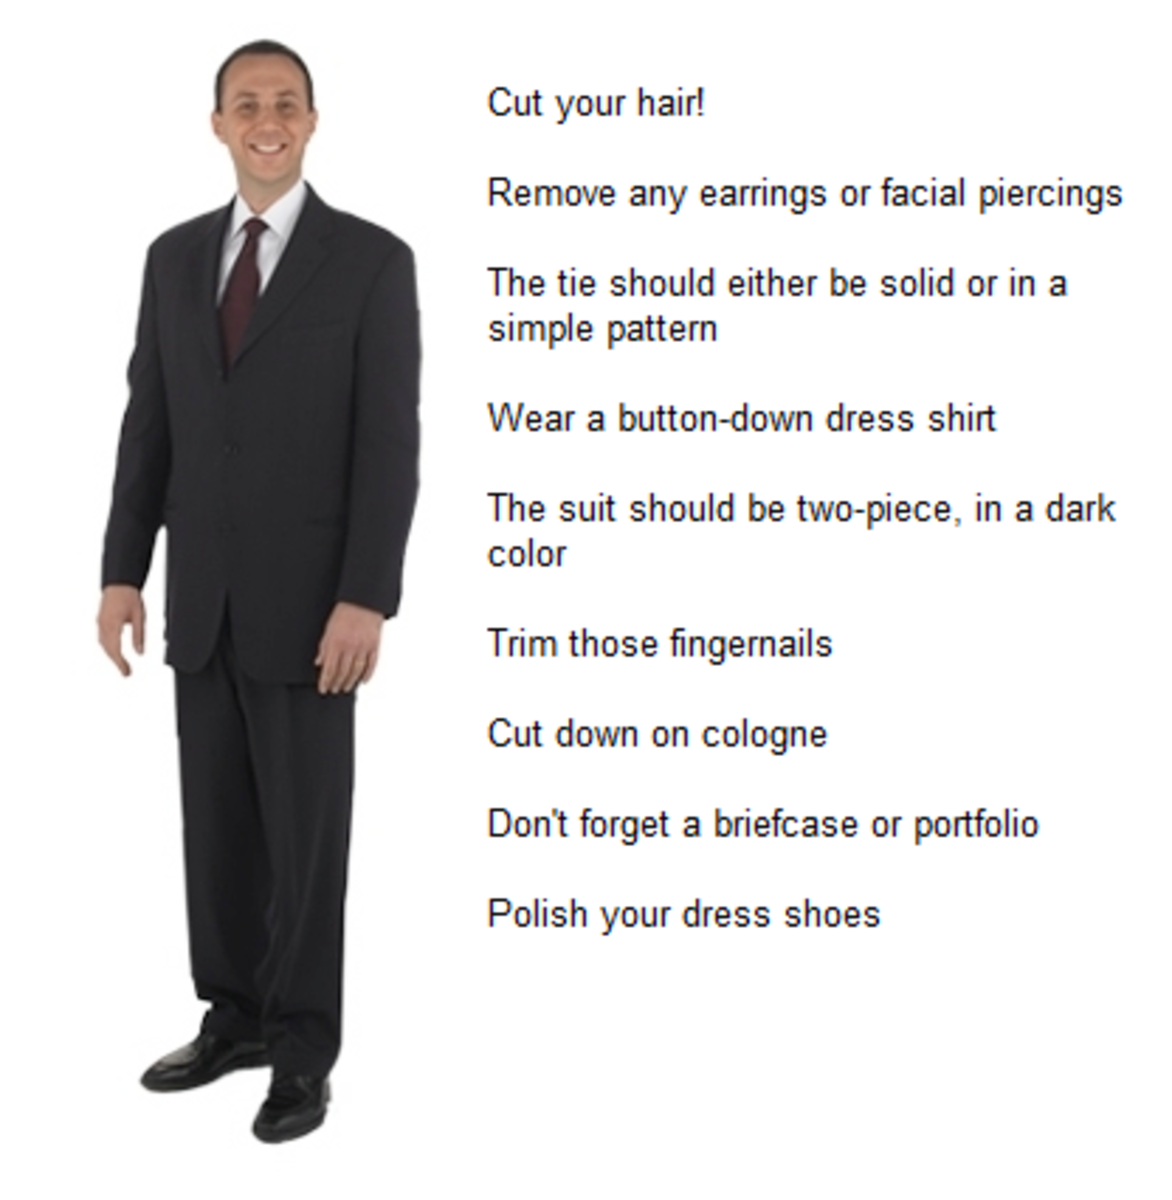 What men should wear to an interview